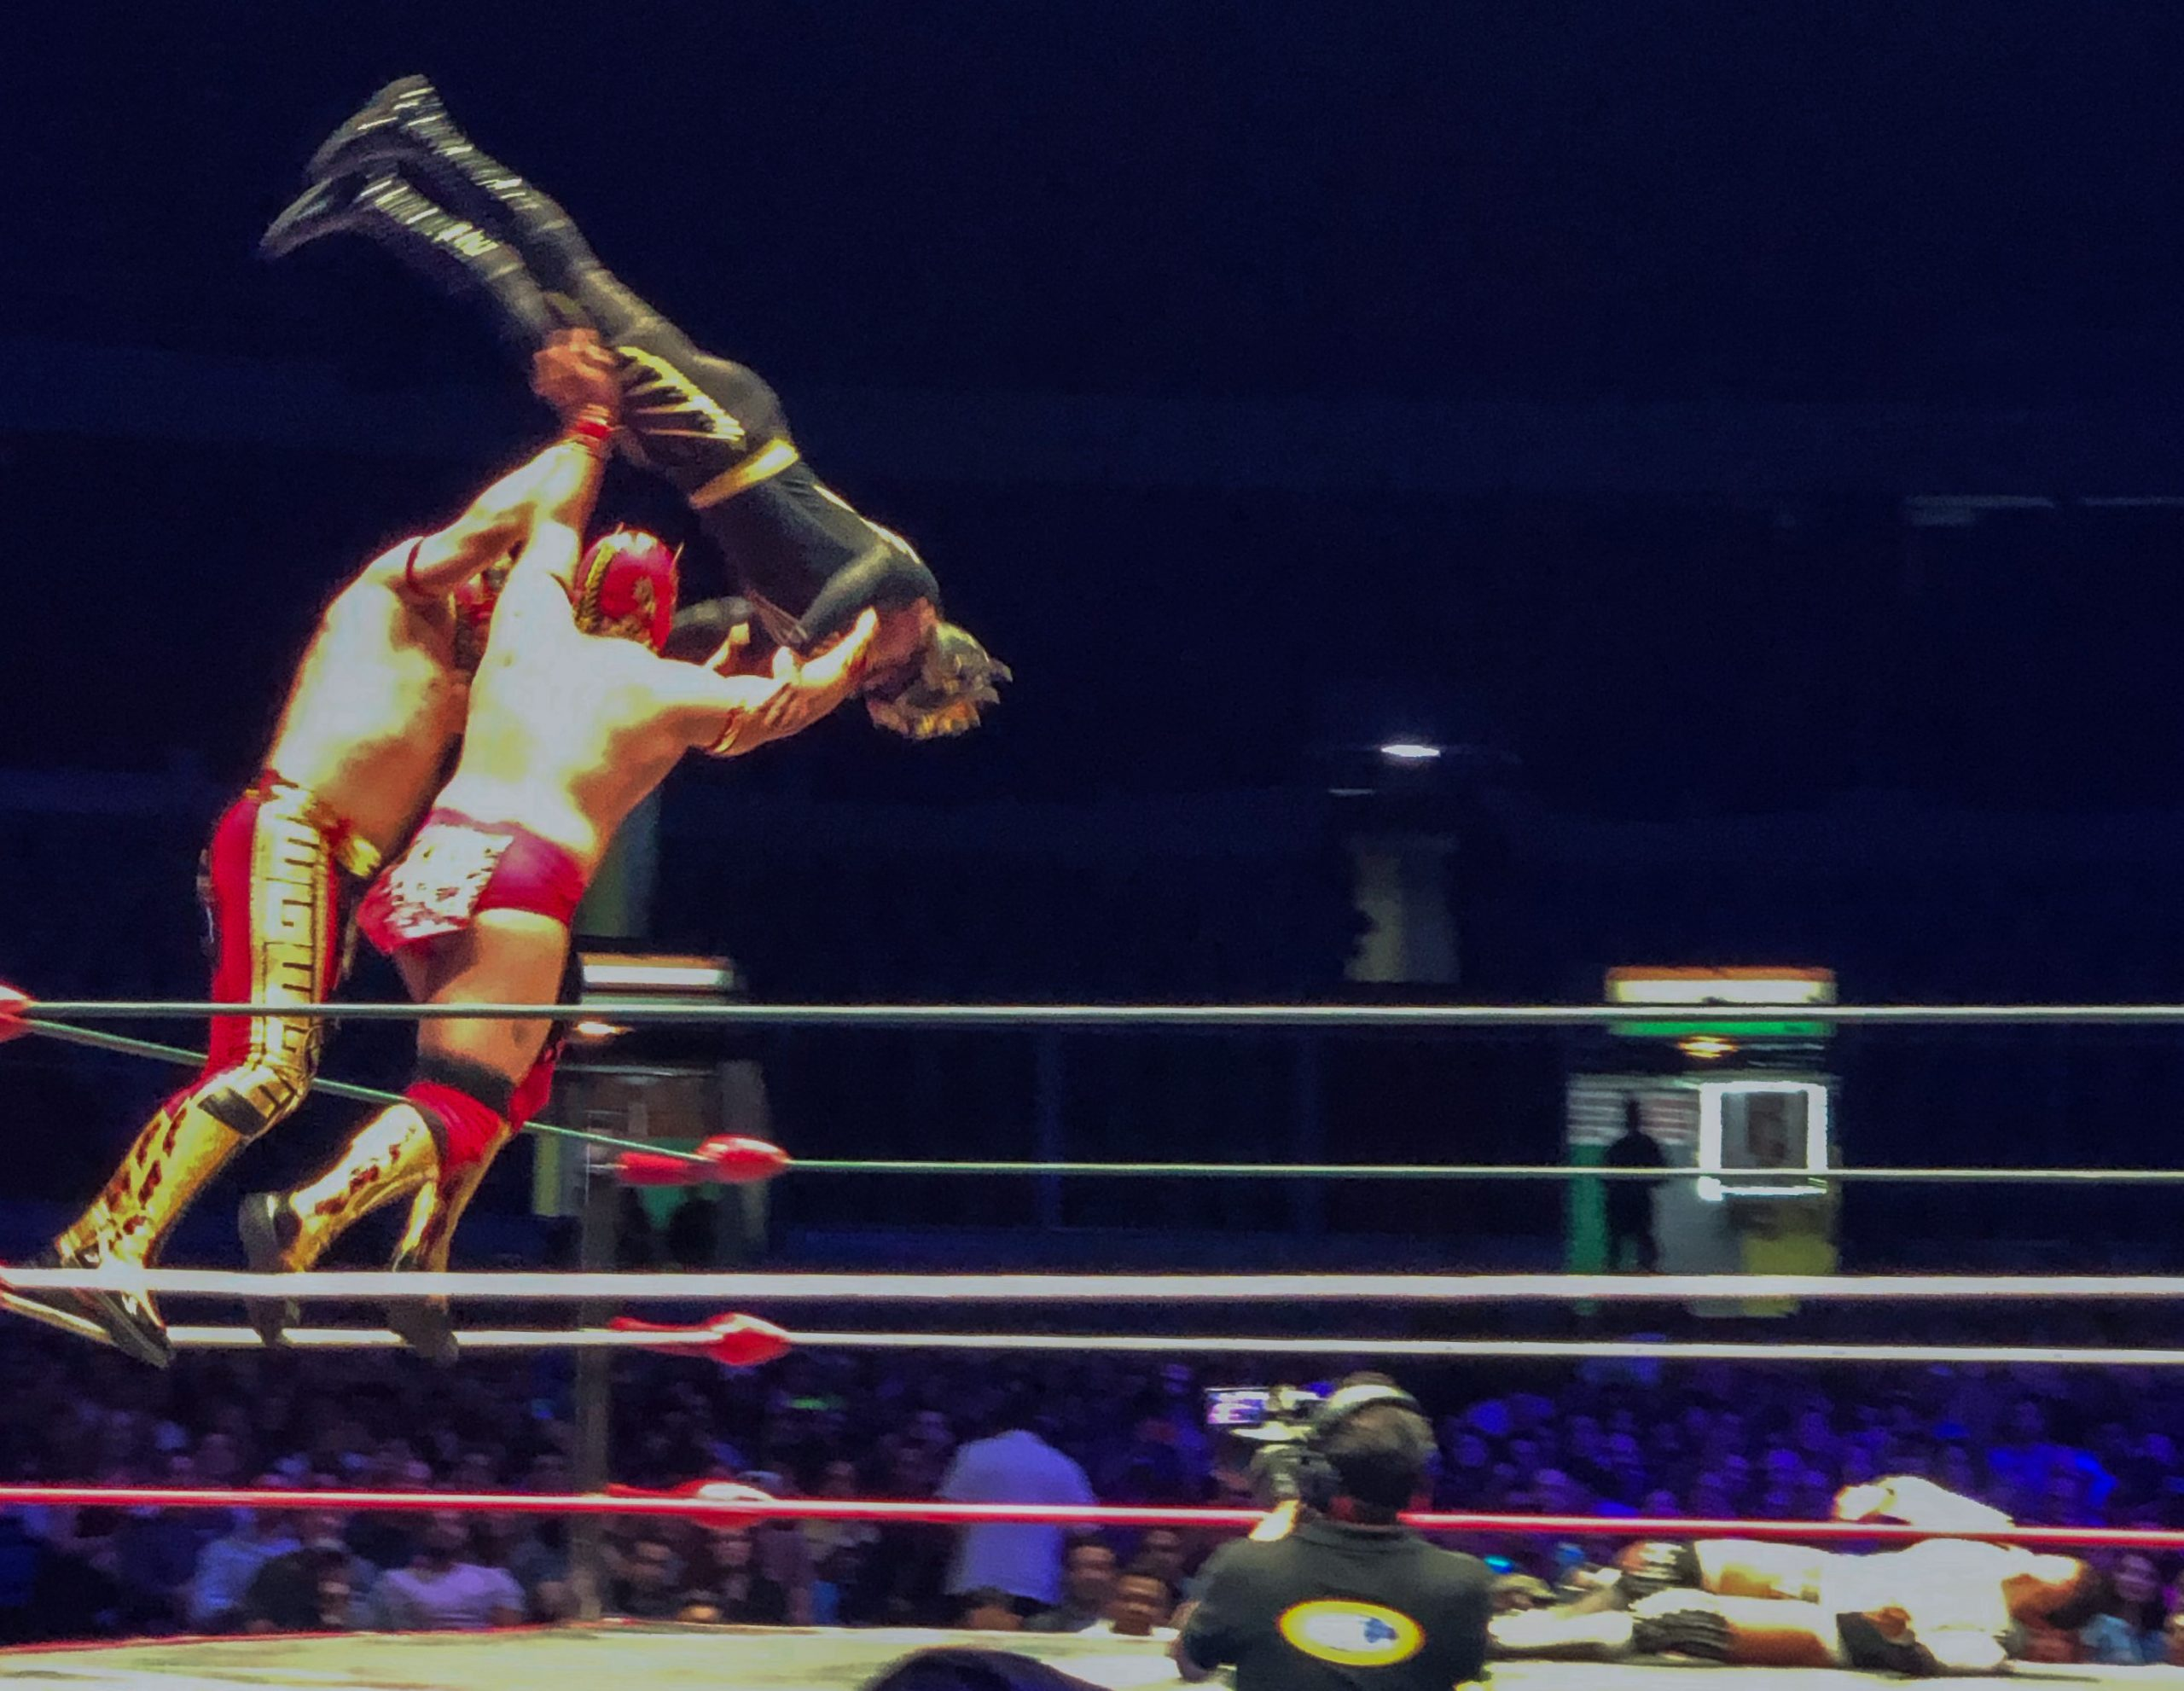 Luchadores throwing opponent